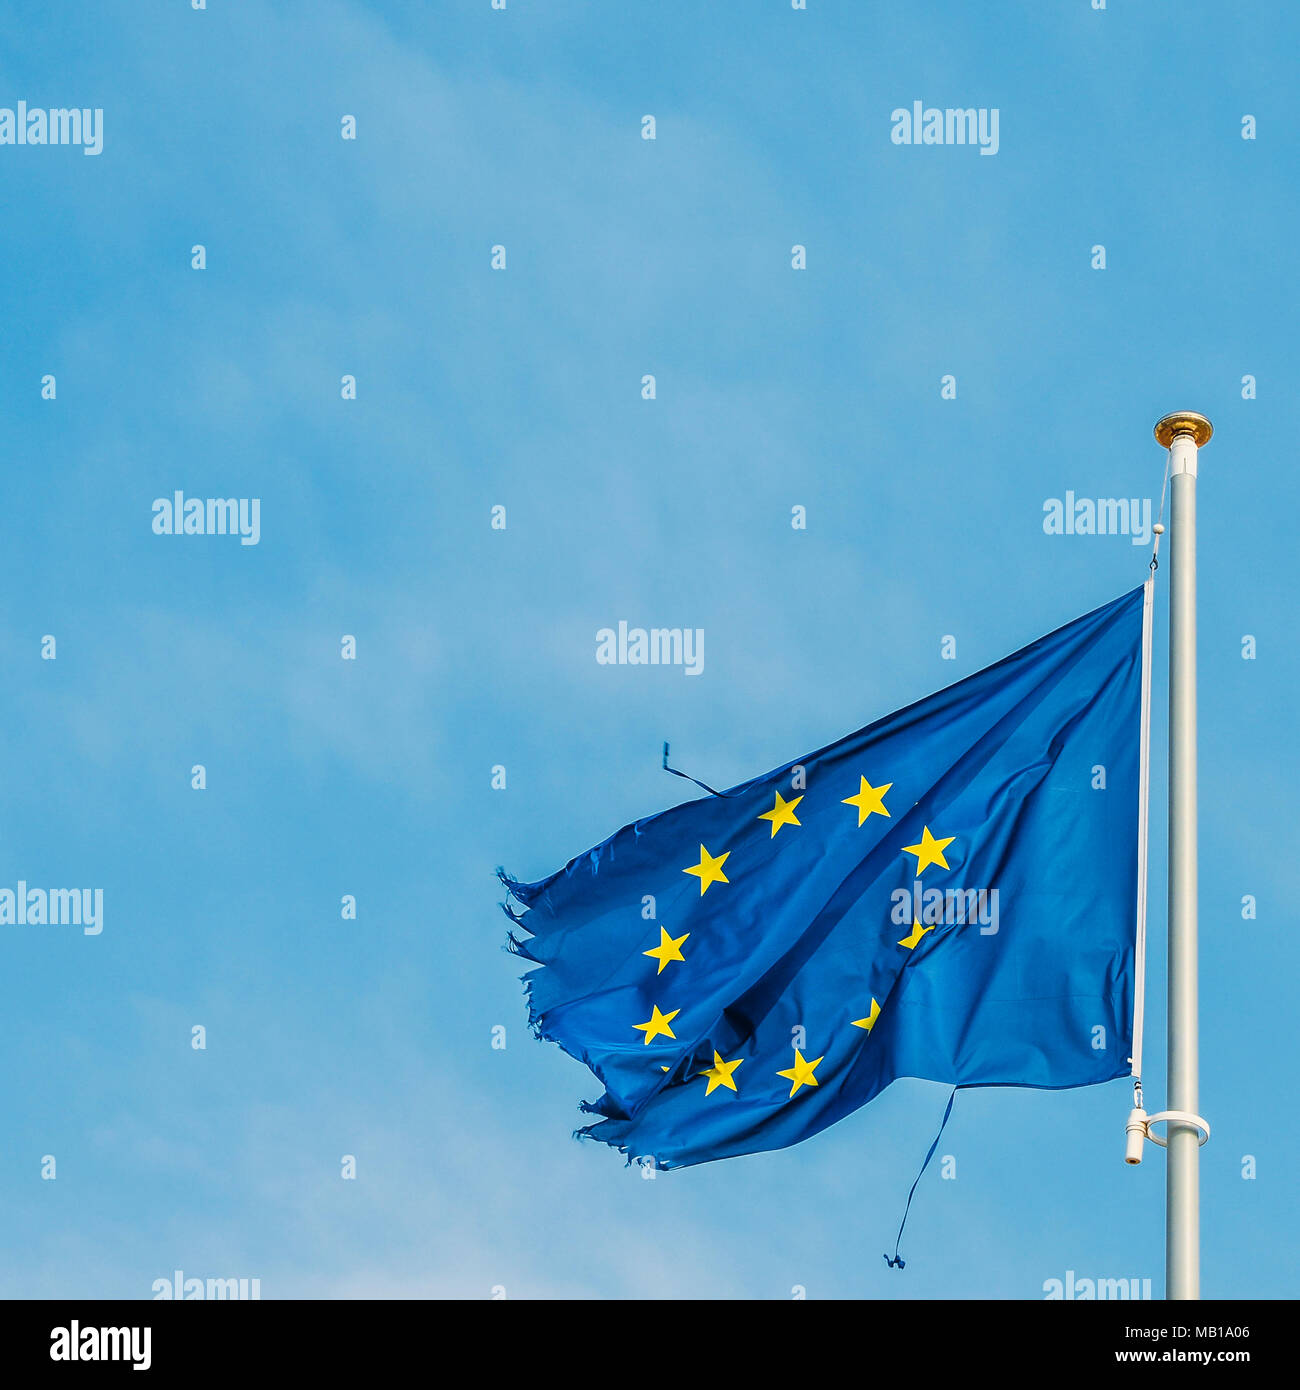 European Union flag on a mast proudly moving in the wind despite the ripped up pieces of cloth on the edges which is perhaps a metaphor for the serious crisis currently facing the economic block. - Stock Image